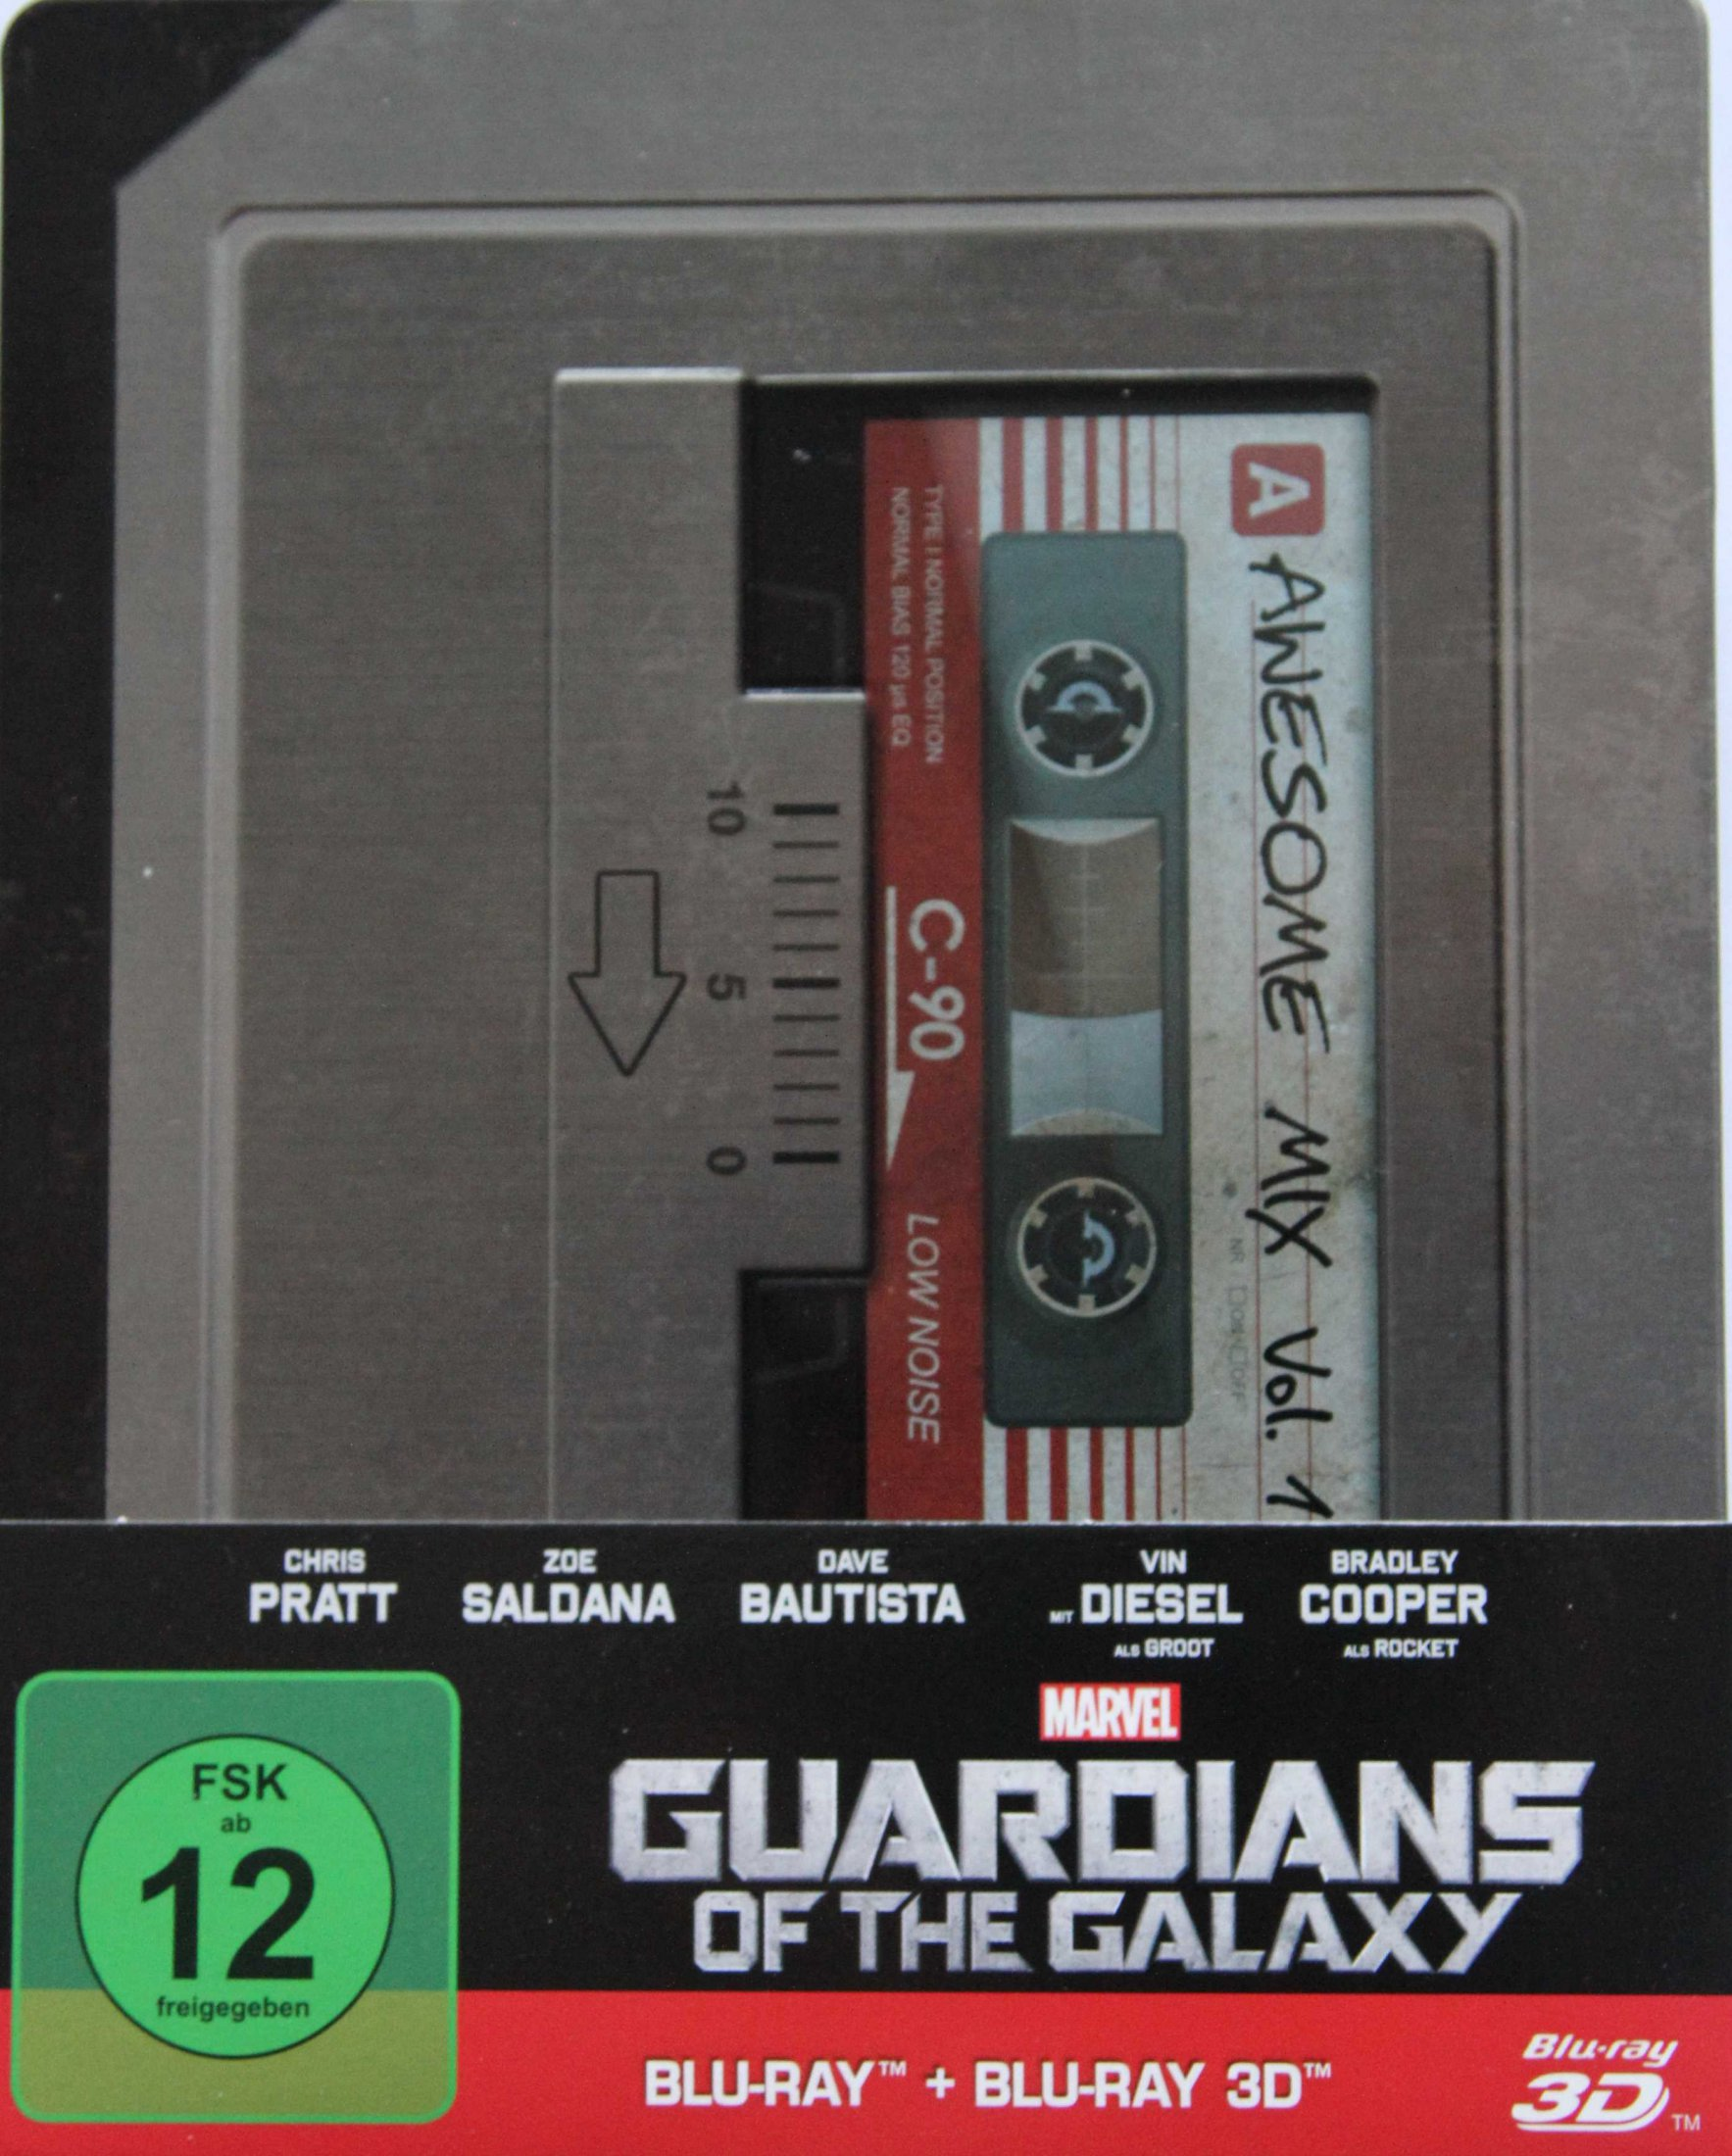 Guardians of the Galaxy Steelbook Front + hülle